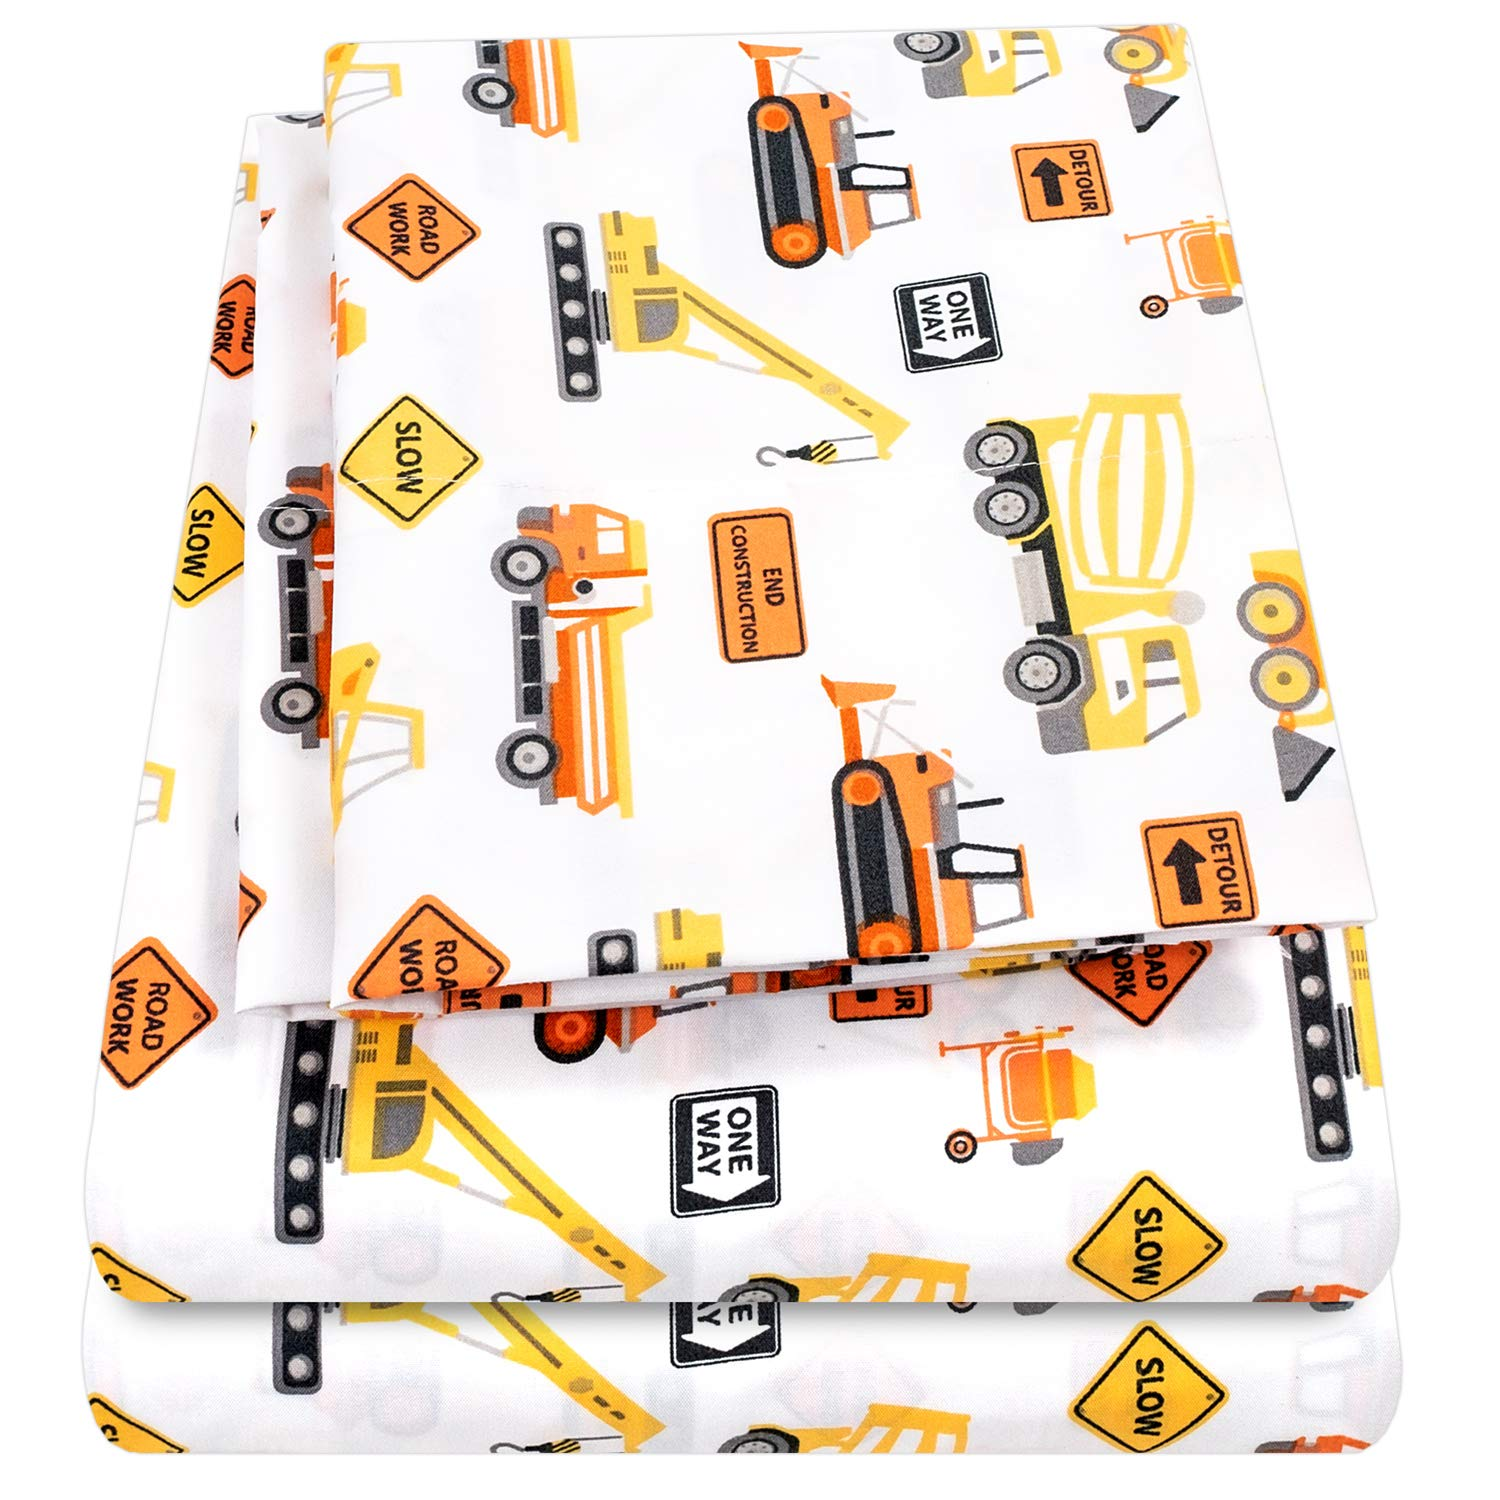 1500 Supreme Kids Bed Sheet Collection - Fun Colorful and Comfortable Boys and Girls Toddler Sheet Sets - Deep Pocket Wrinkle Free Hypoallergenic Soft and Cozy Bedding - Twin, Construction